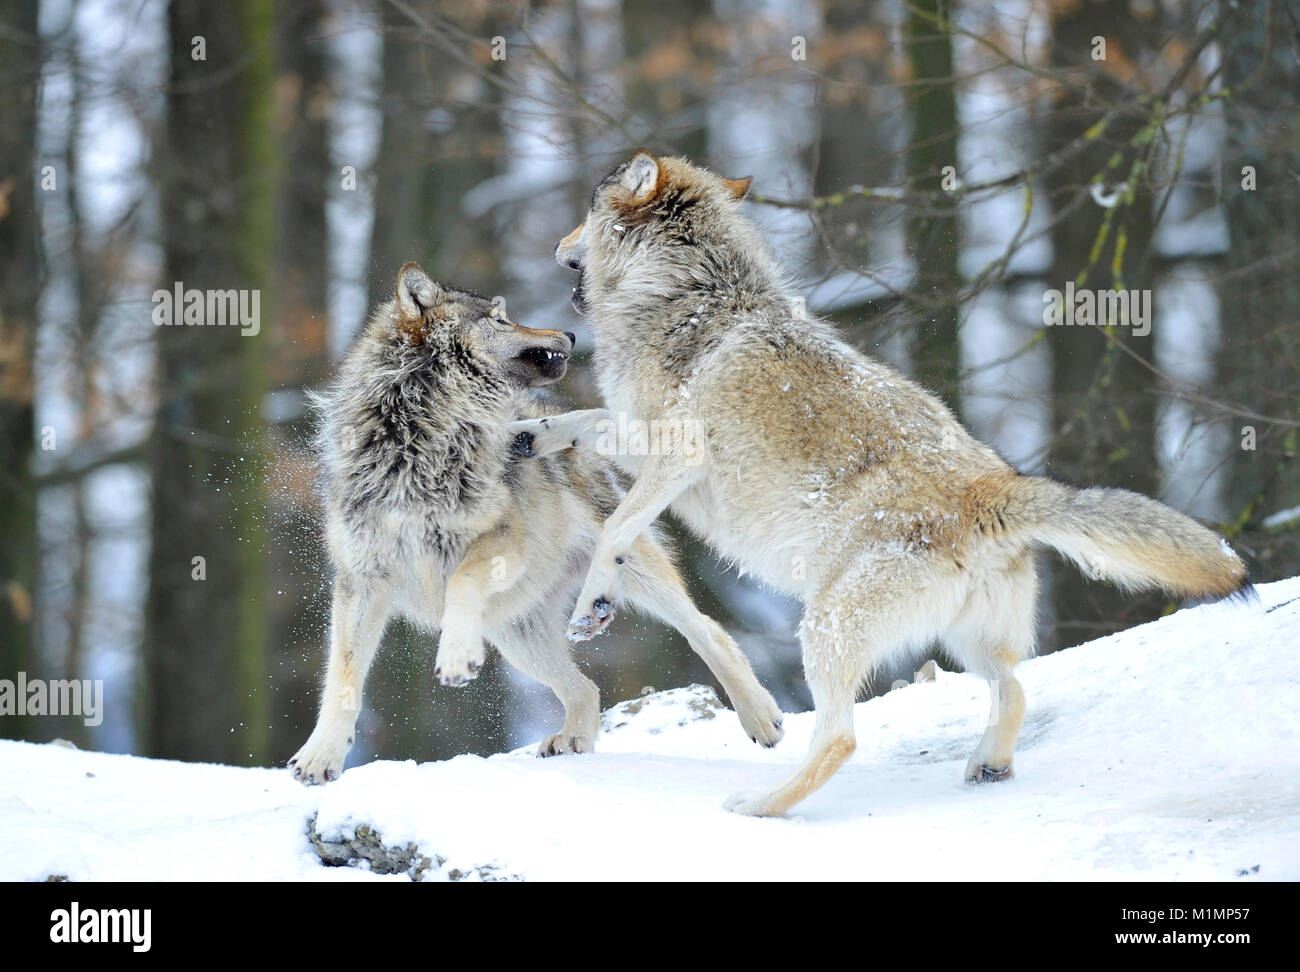 Wolf Timber Wolf Canis lupus, Wolf Timberwolf Canis lupus Stock Photo